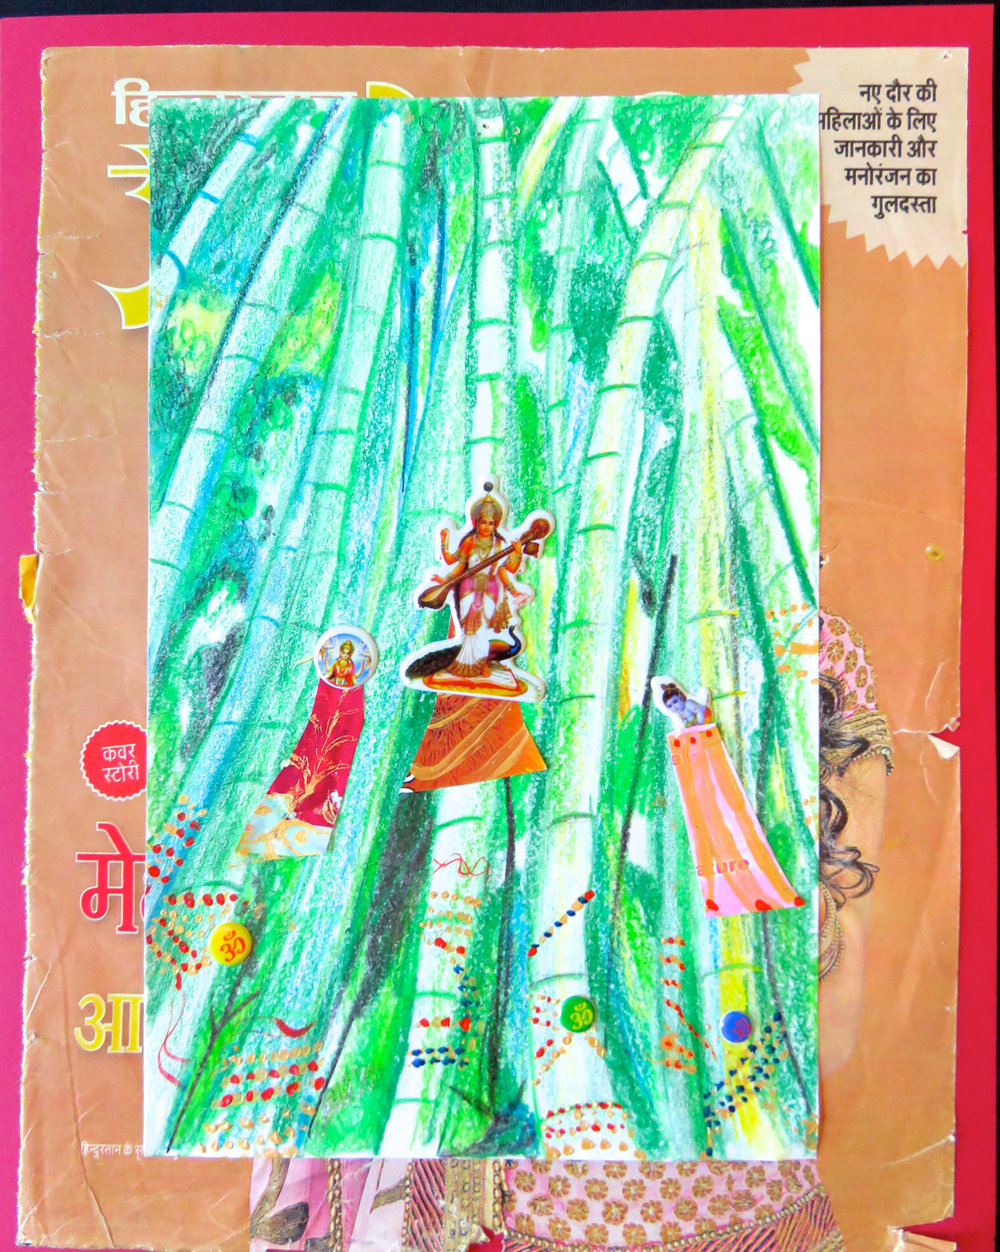 sacred bamboo trees with dresses & deities